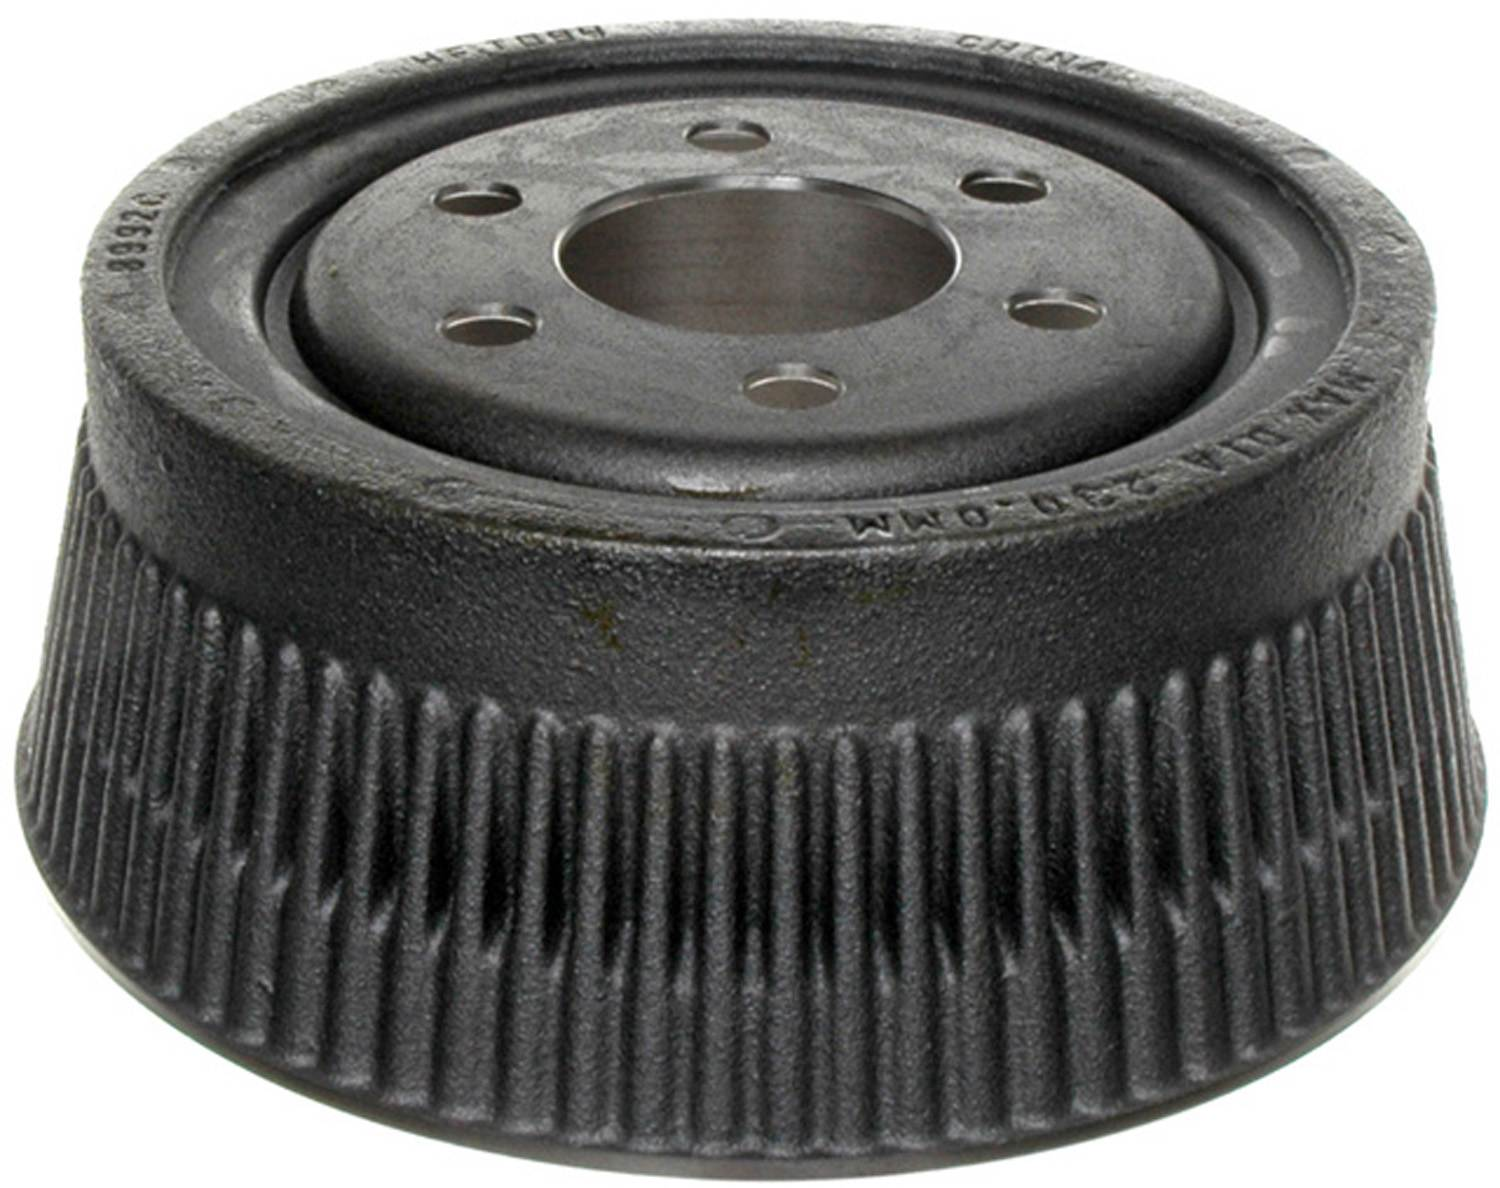 ACDELCO GOLD/PROFESSIONAL BRAKES - Brake Drum (Rear) - ADU 18B251